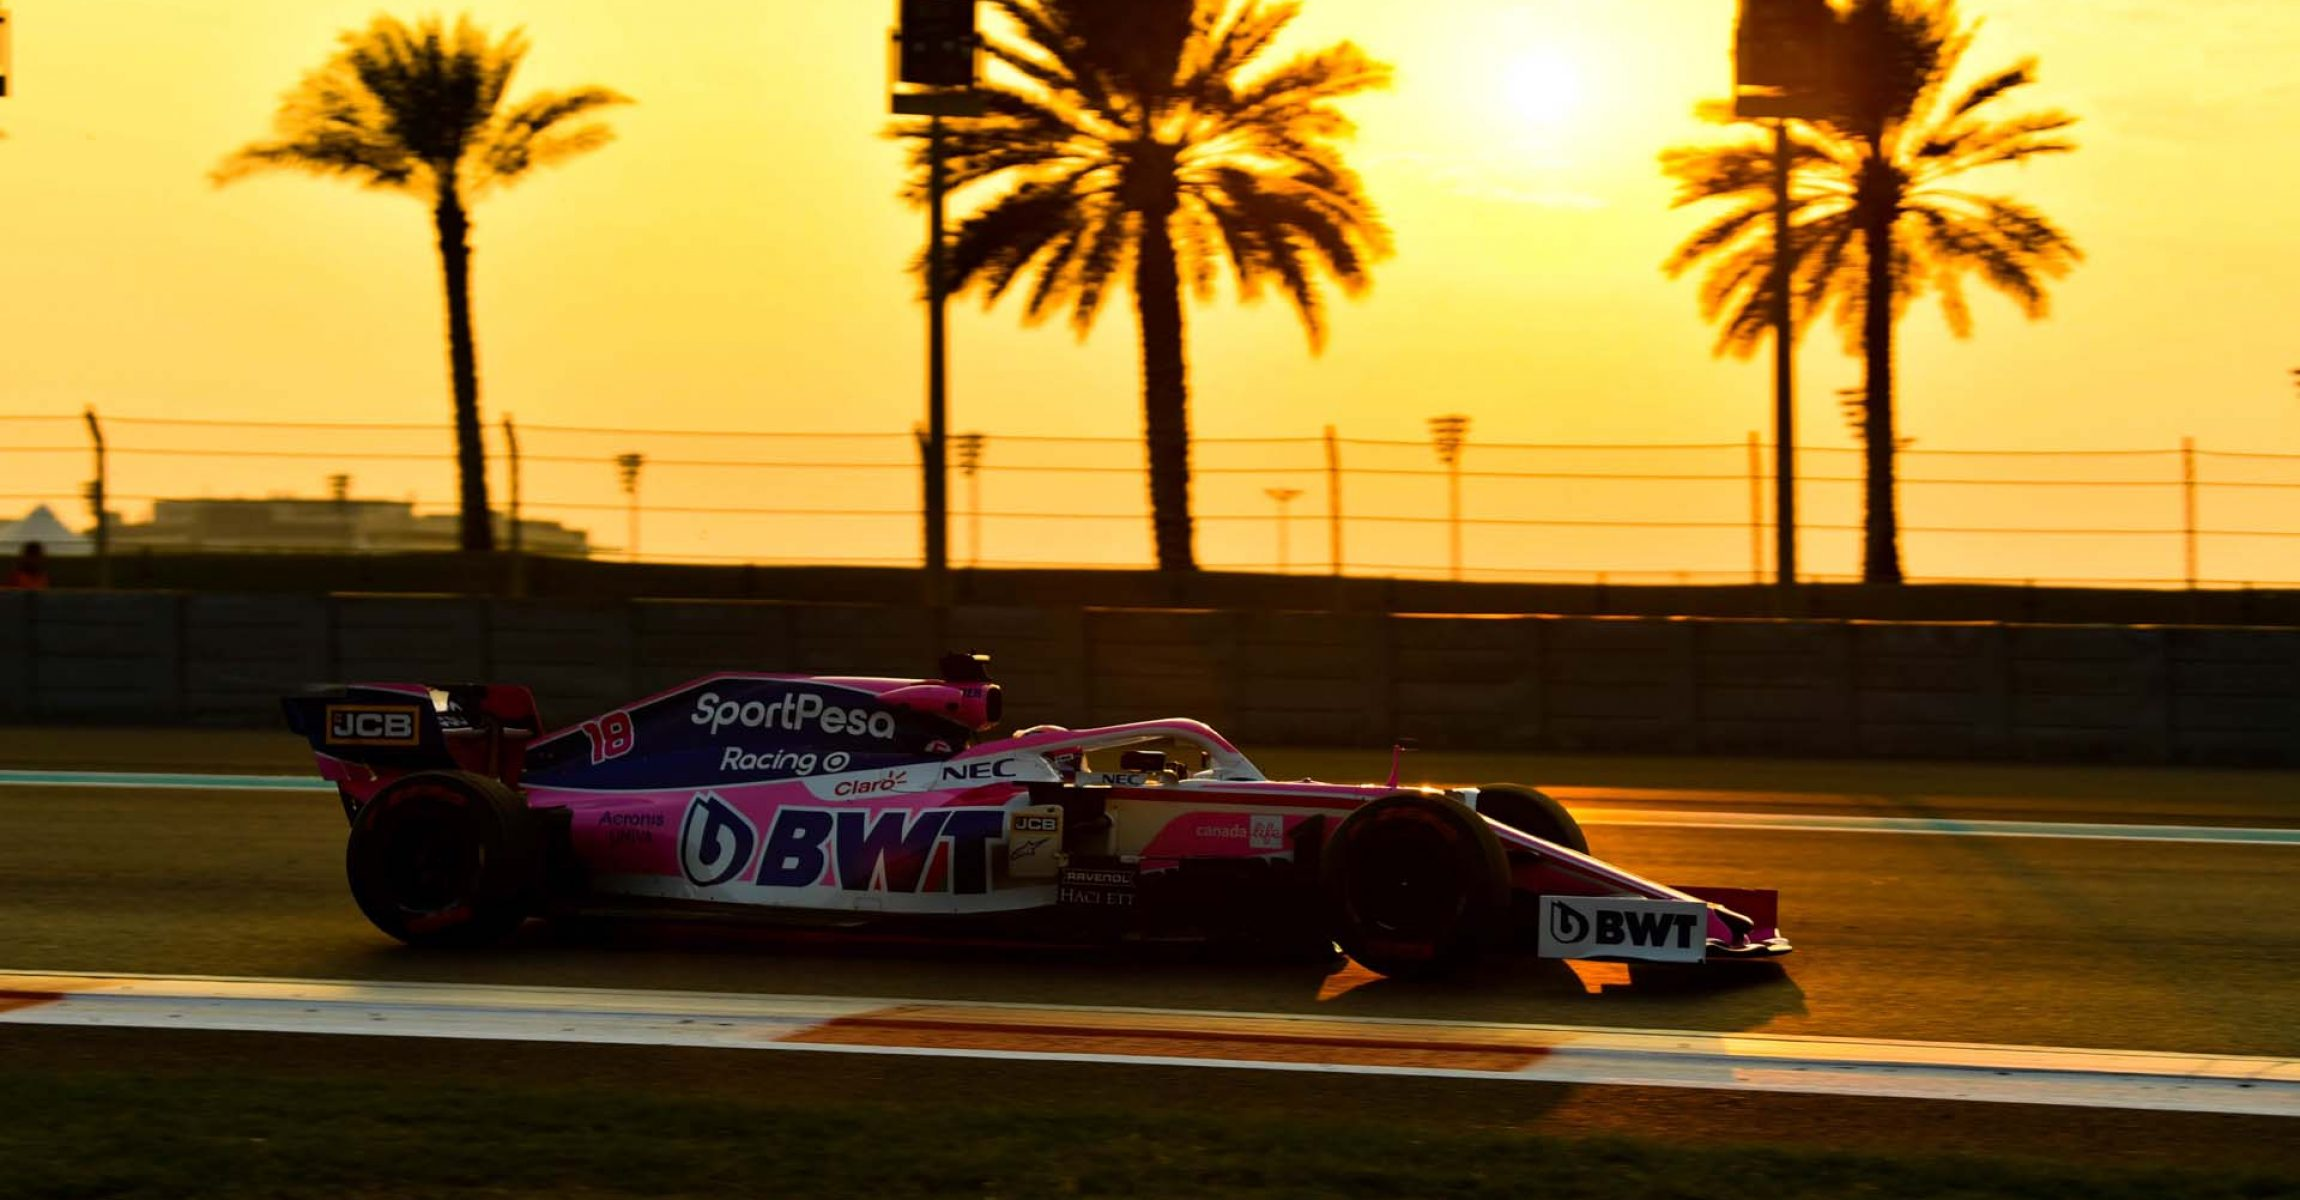 YAS MARINA CIRCUIT, UNITED ARAB EMIRATES - DECEMBER 04: Lance Stroll, Racing Point RP19 during the Abu Dhabi December Testing at Yas Marina Circuit on December 04, 2019 in Yas Marina Circuit, United Arab Emirates. (Photo by Mark Sutton / LAT Images)